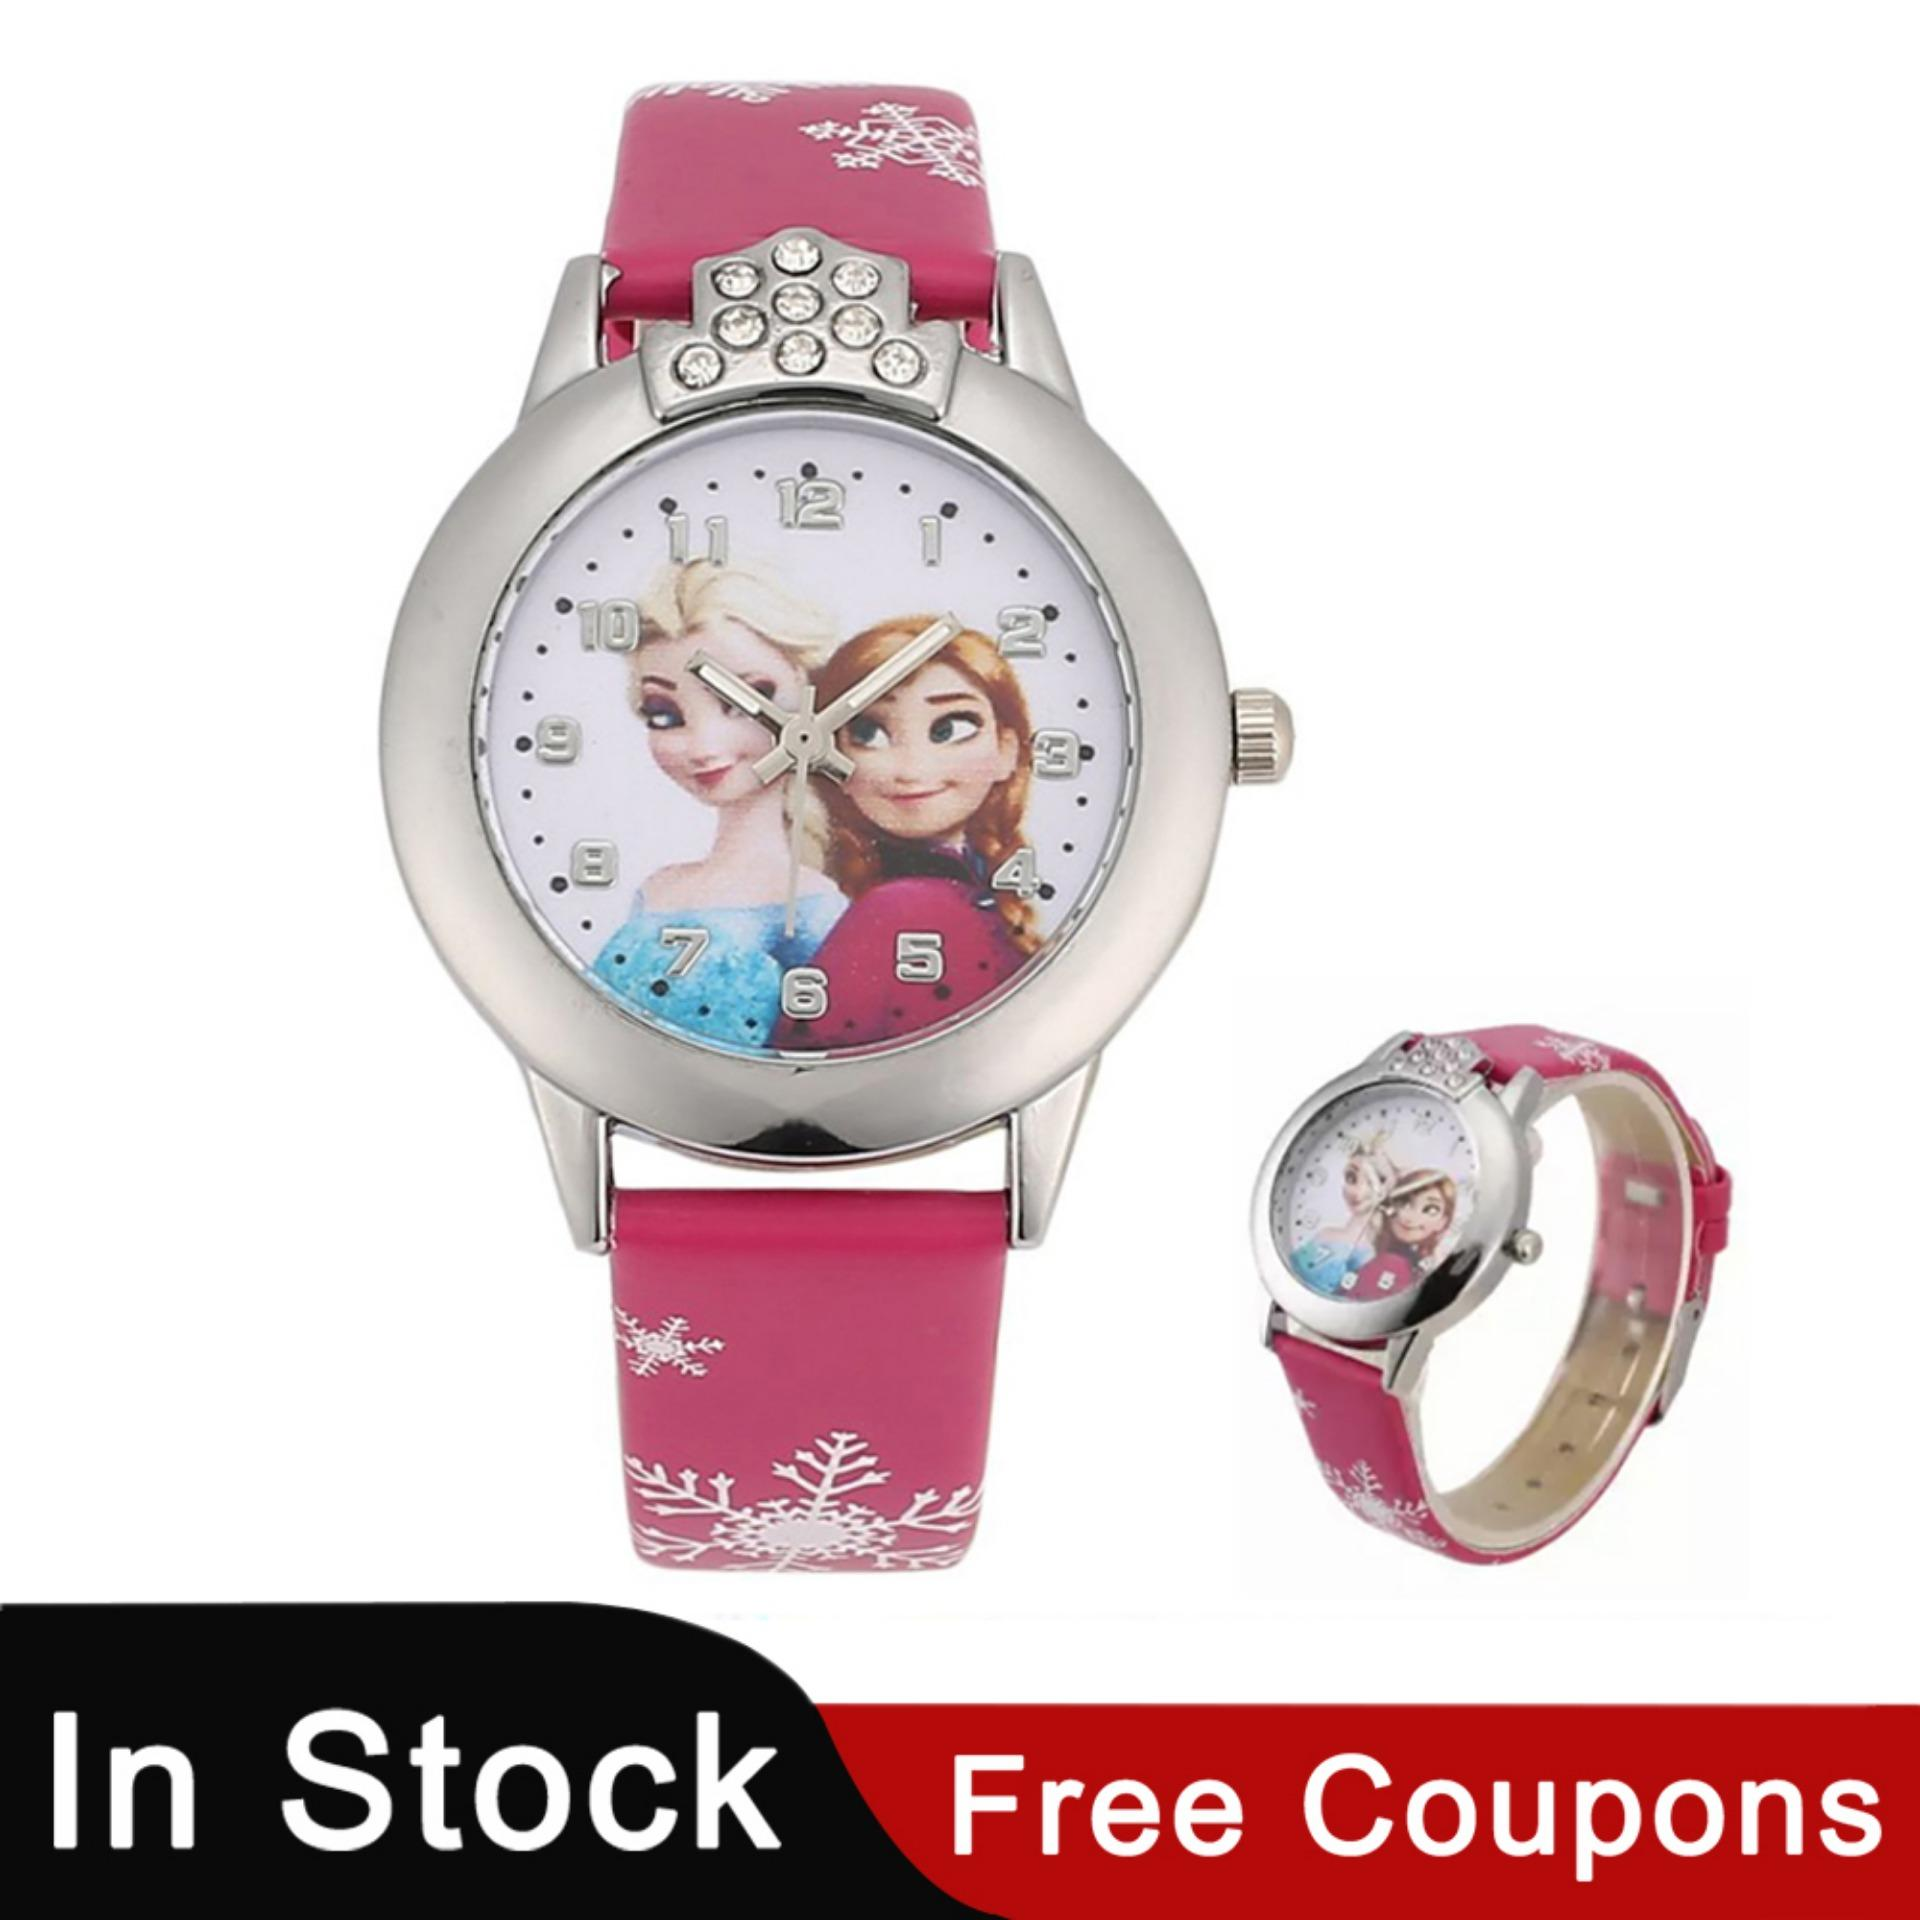 Children's Watches Ohsen Digital Lcd Kids Girl Pink Wristwatch Rubber Strap 50m Diver 7 Colors Cartoon Children Boys Fashion Watch Alarm Hand Clock